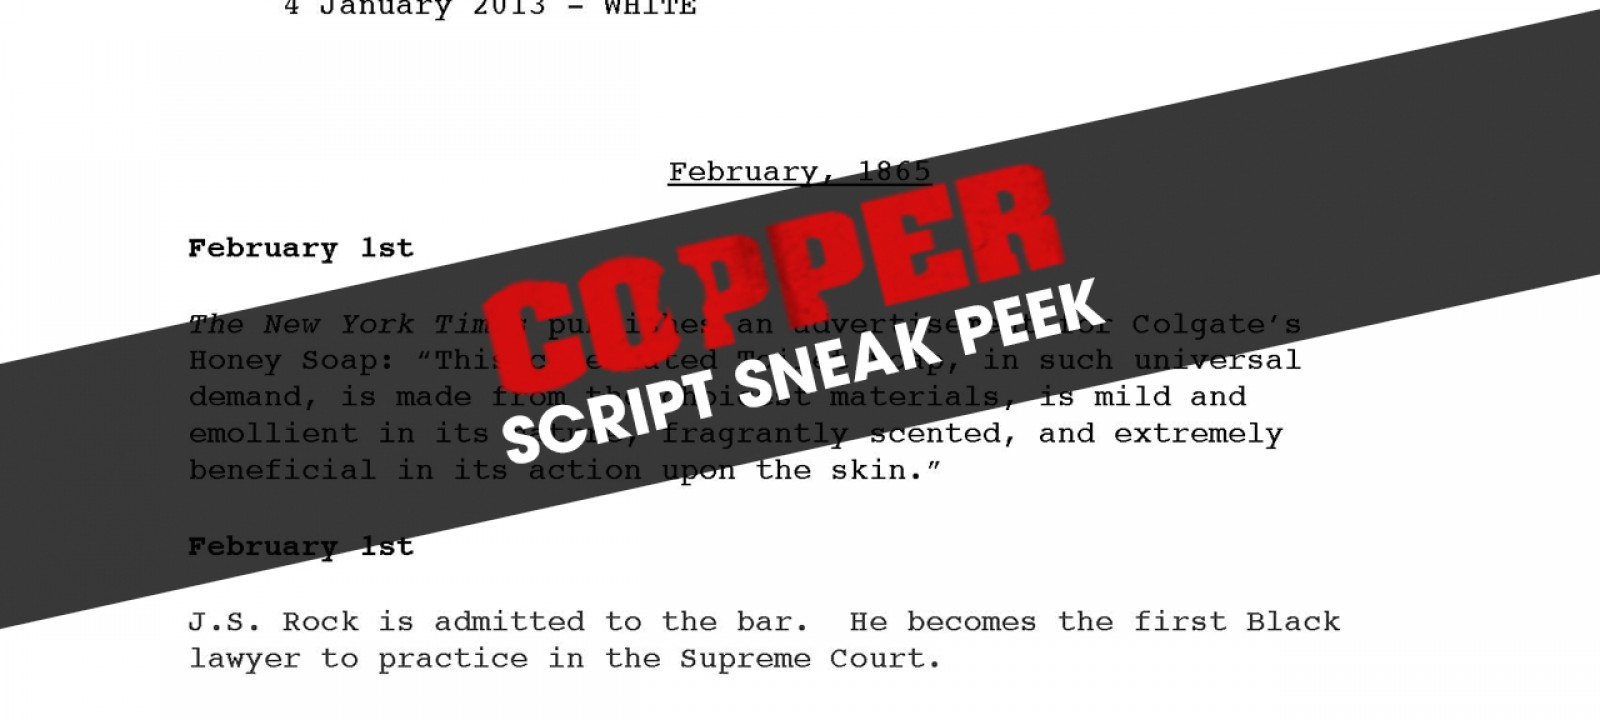 Copper-ScriptSneak